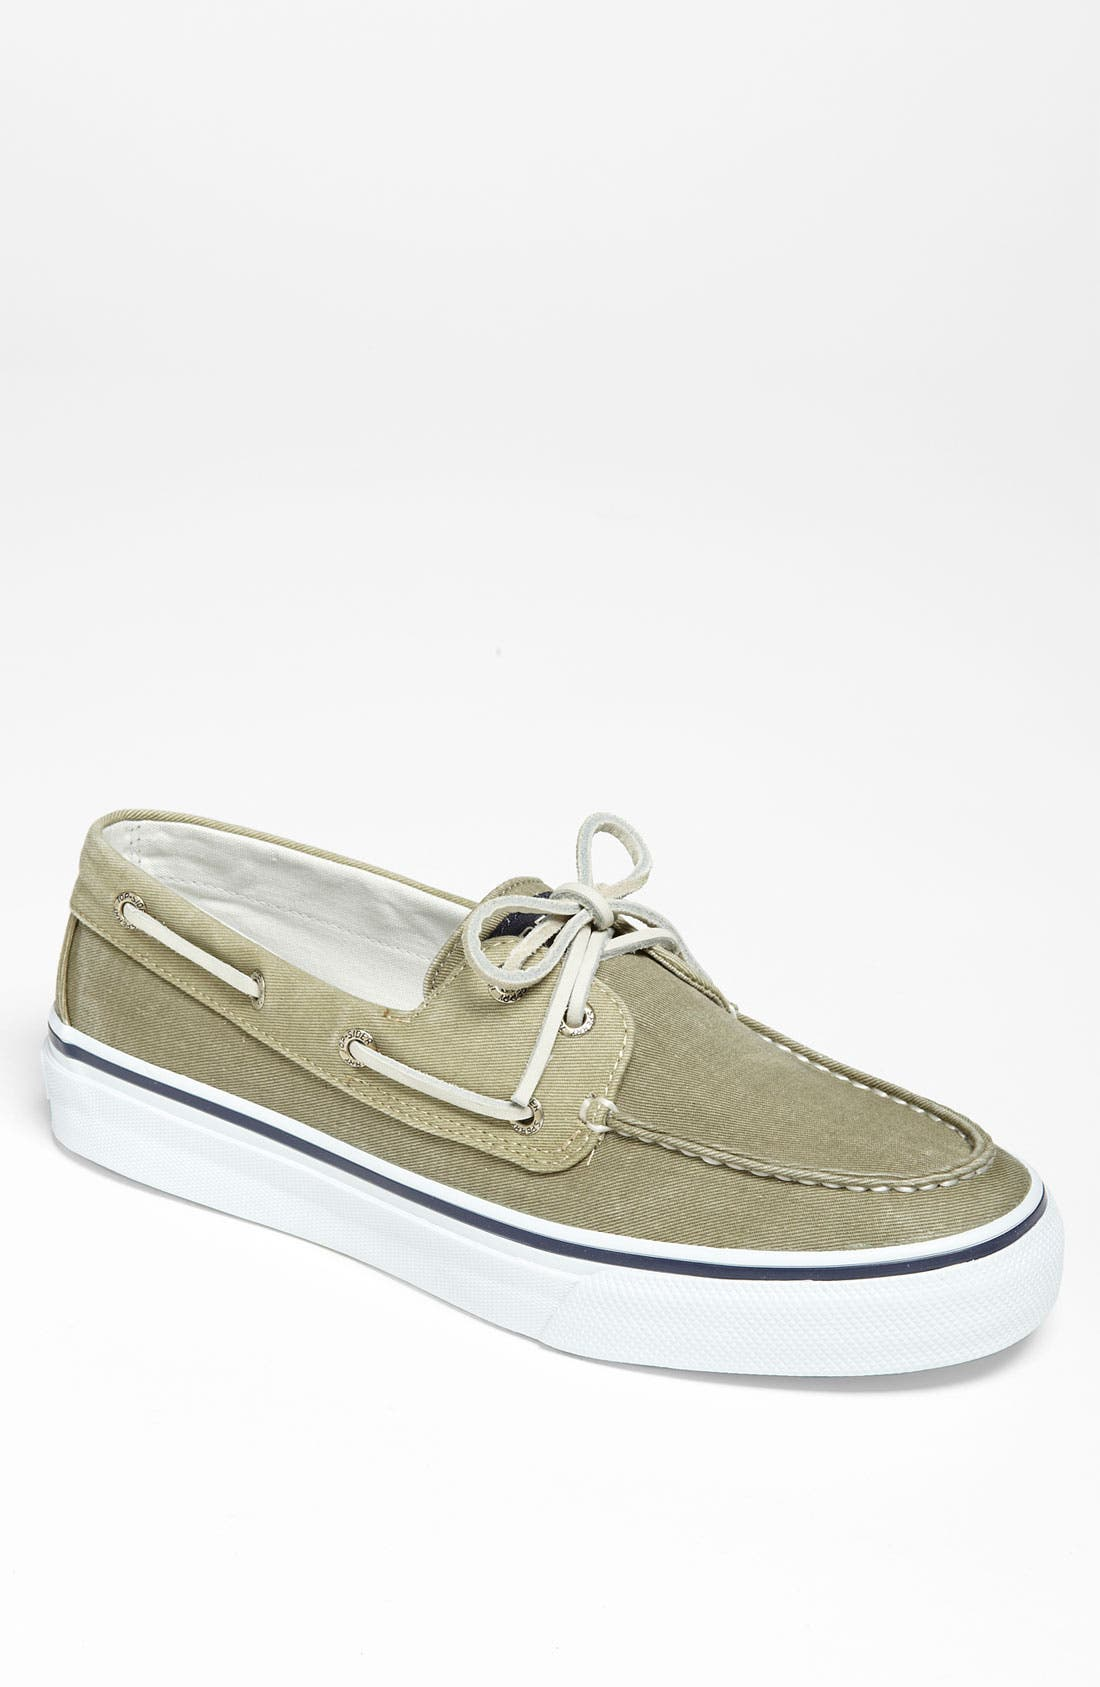 Sperry Top-Sider® 'Bahama' Boat Shoe